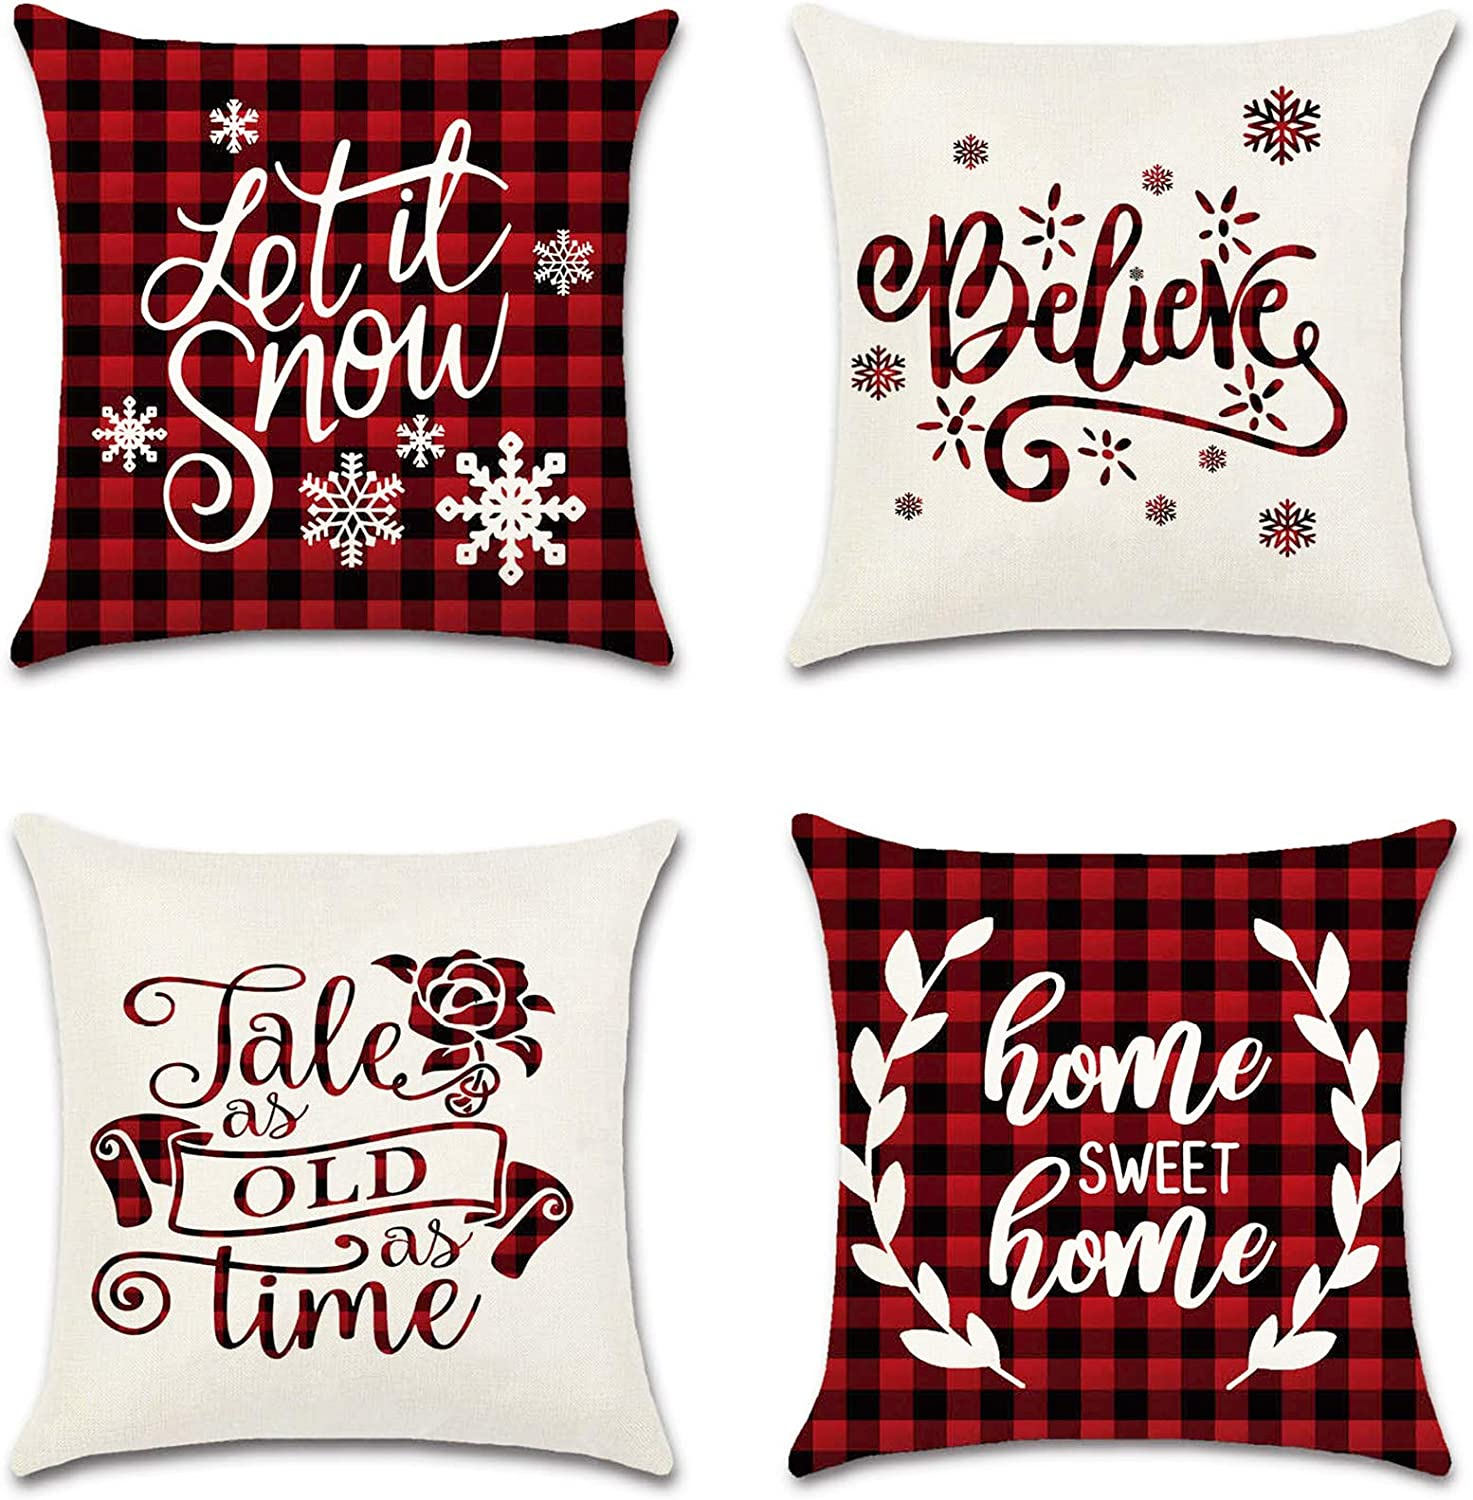 Acerich Christmas Throw Pillow Covers 18x18 Inch, 4 PCS Red Buffalo Plaid Christmas Pillow Cases for Home Xmas Decorations